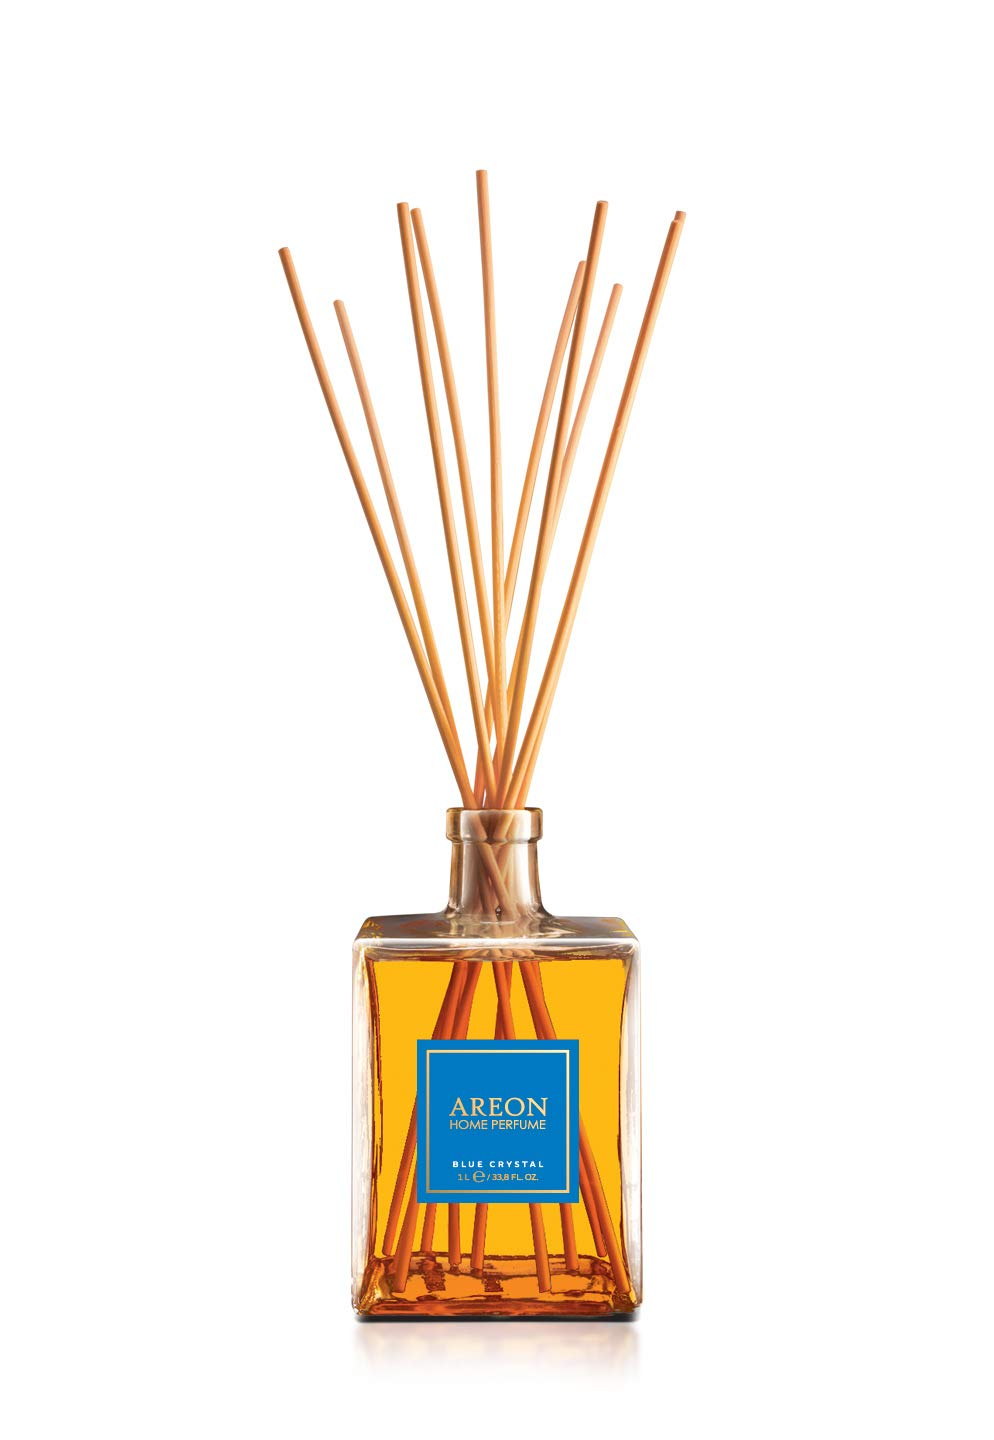 Areon Home Perfume Sticks - 1 Liter (34 OZ) Eau D' ETE by Areon (Image #8)